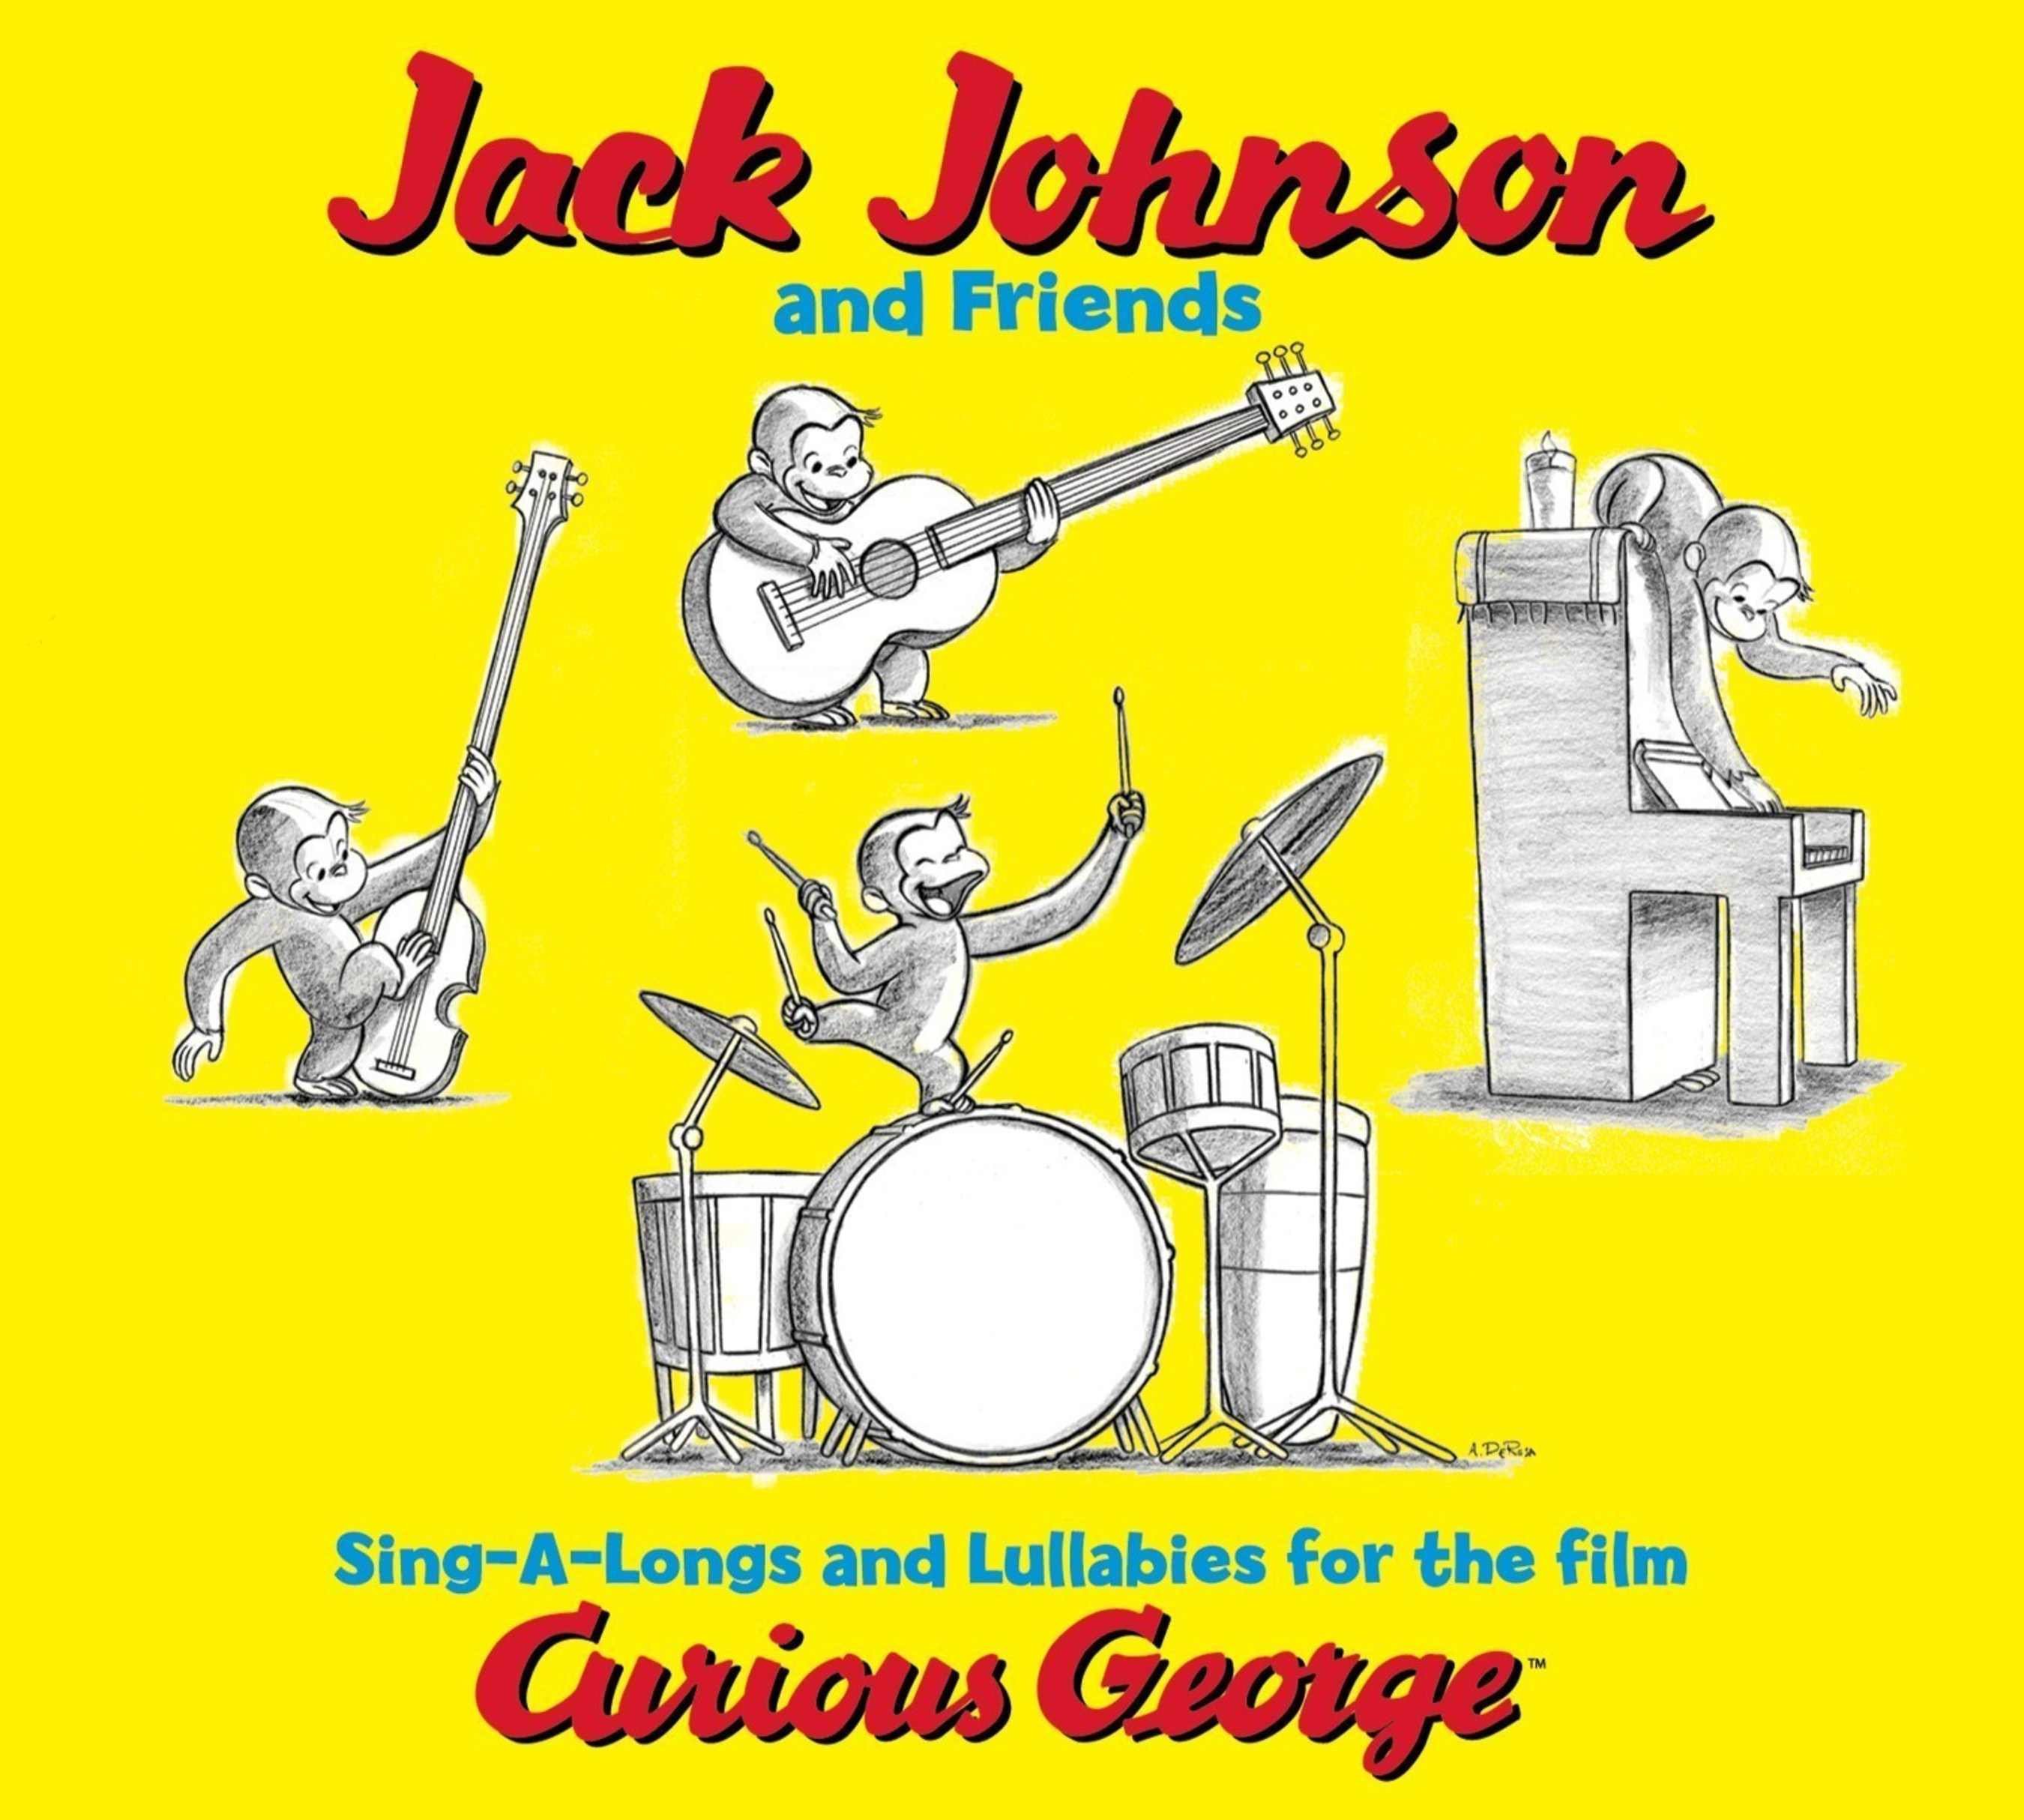 Brushfire/Republic/UMe Announces The First Time Vinyl Release Of 'Jack Johnson And Friends Sing-A-Longs And Lullabies For The Film Curious George'